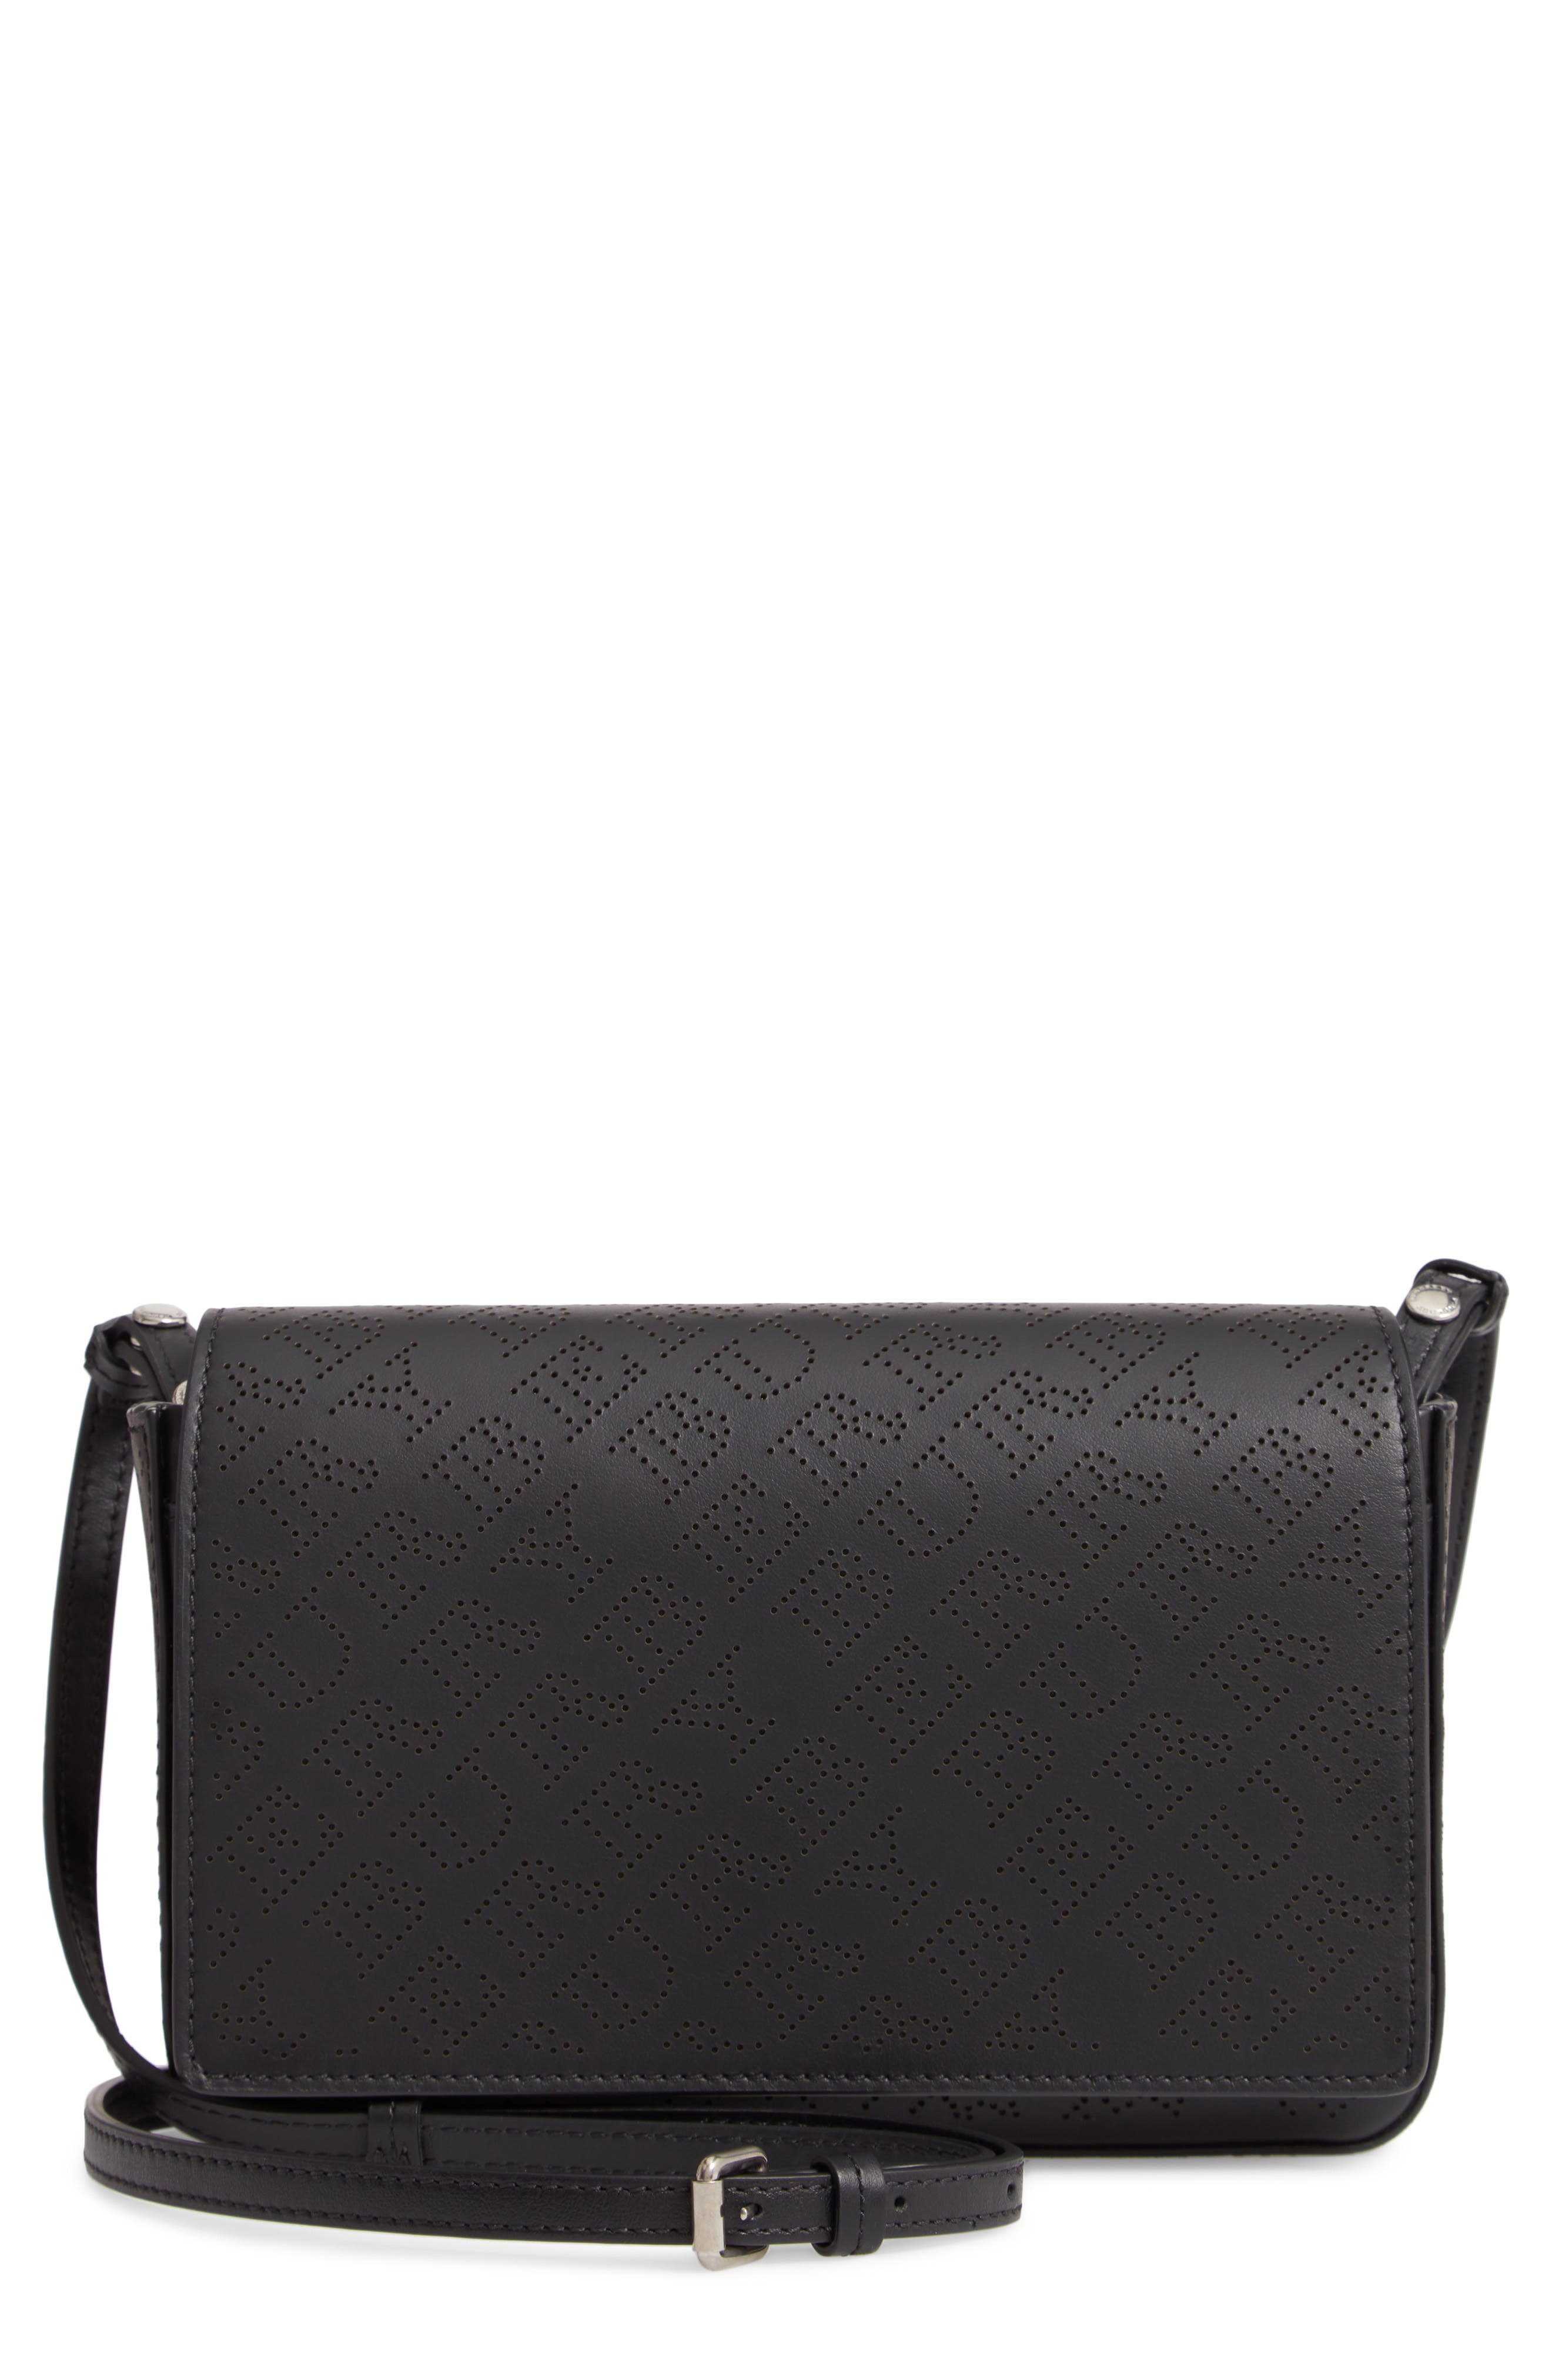 Hampshire Perforated Leather Crossbody Bag,                             Main thumbnail 1, color,                             BLACK